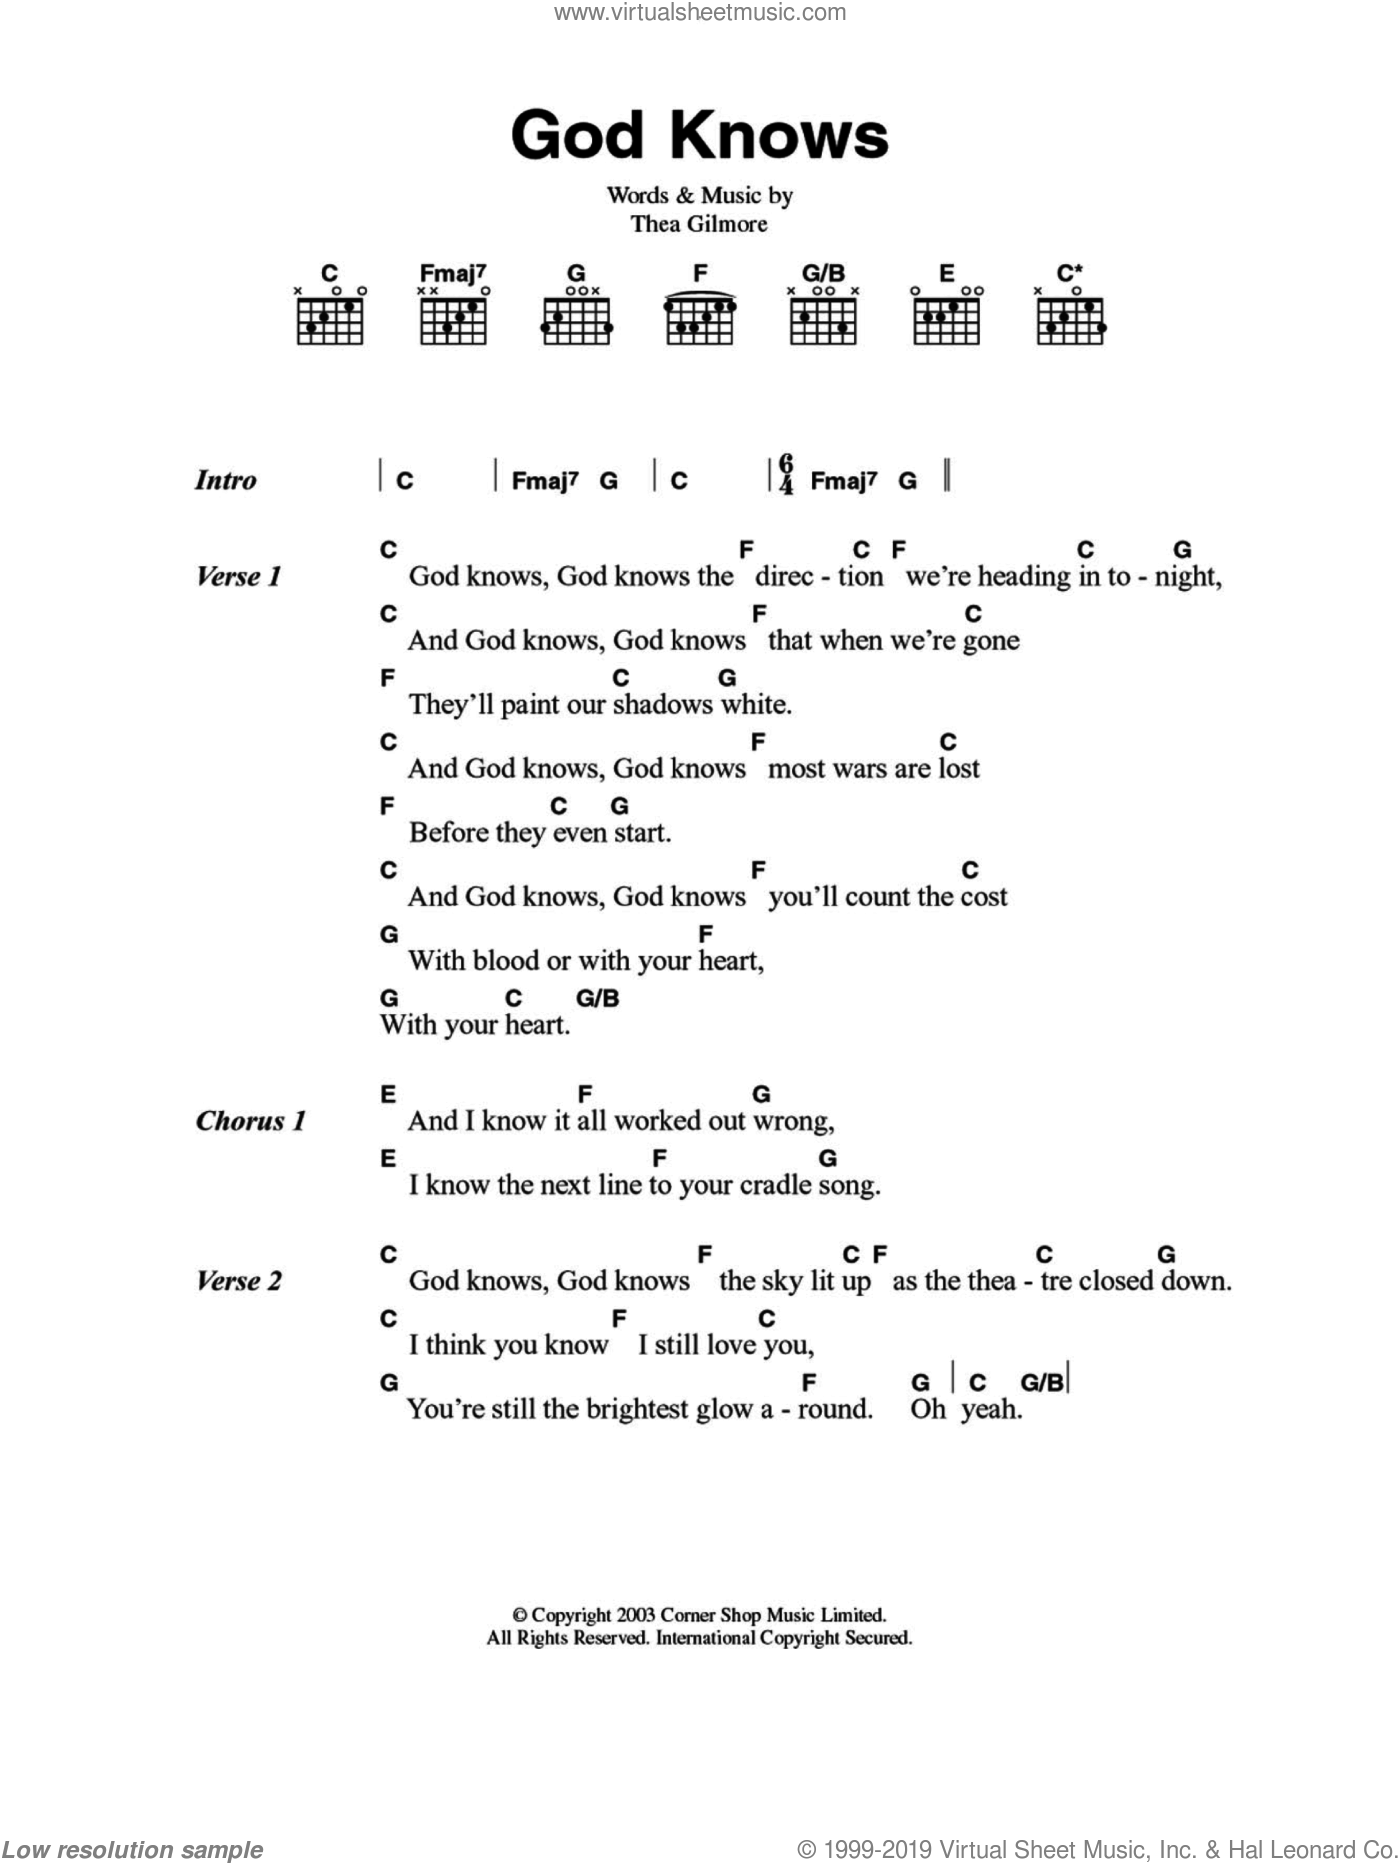 God Knows sheet music for guitar (chords) by Thea Gilmore. Score Image Preview.